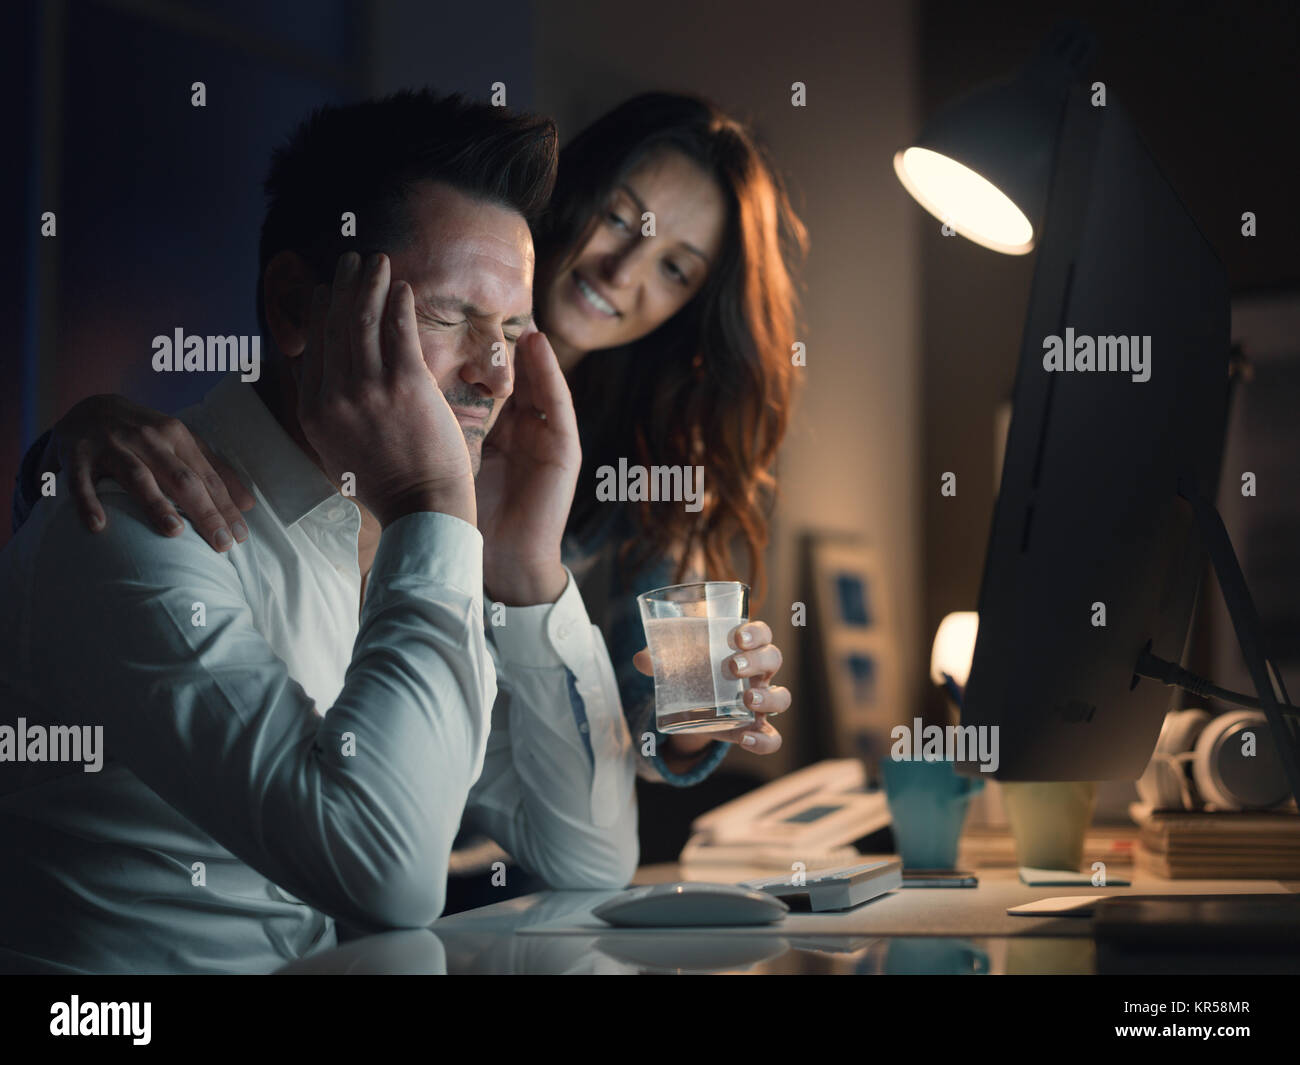 Man working with his computer and having a bad headache, his wife is giving him a painkiller and comforting him - Stock Image